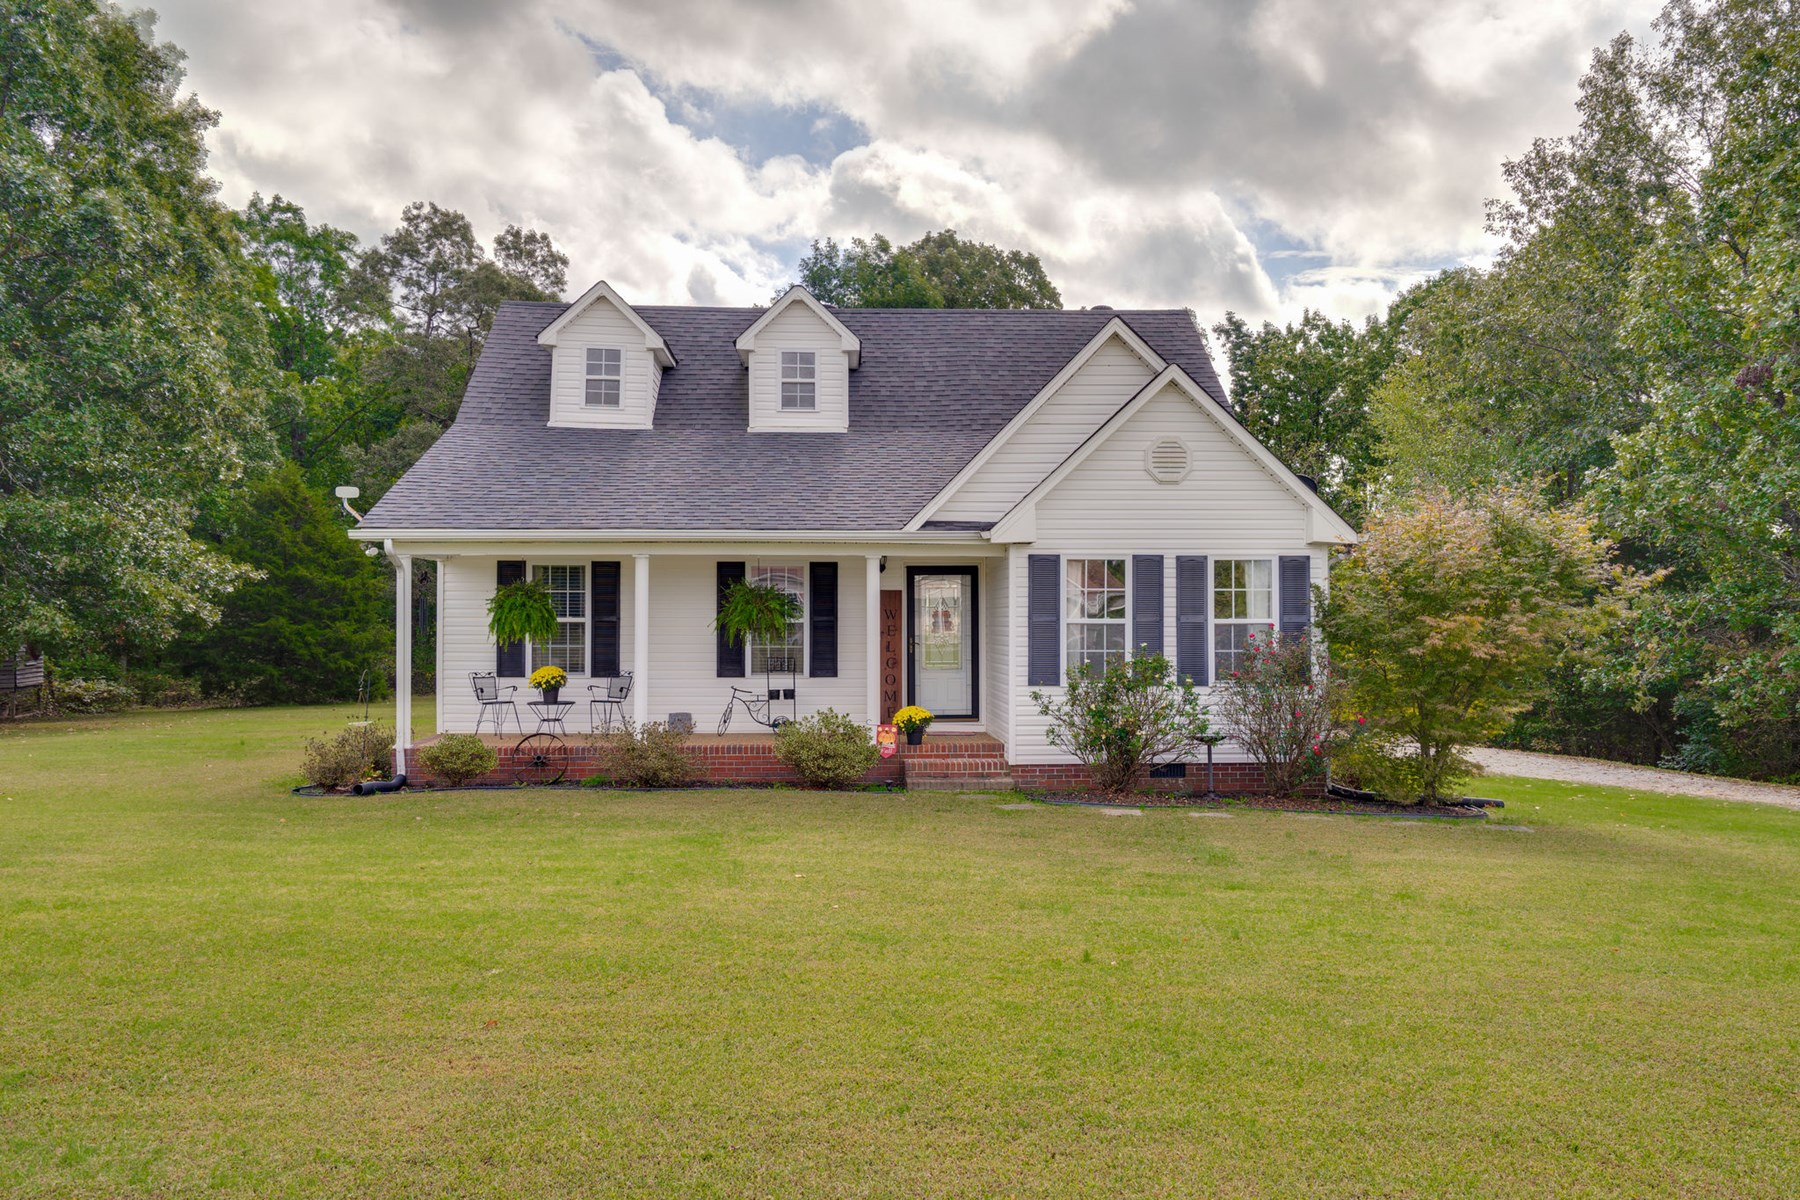 Hohenwald, Tennessee Lewis County Country Home with Acreage